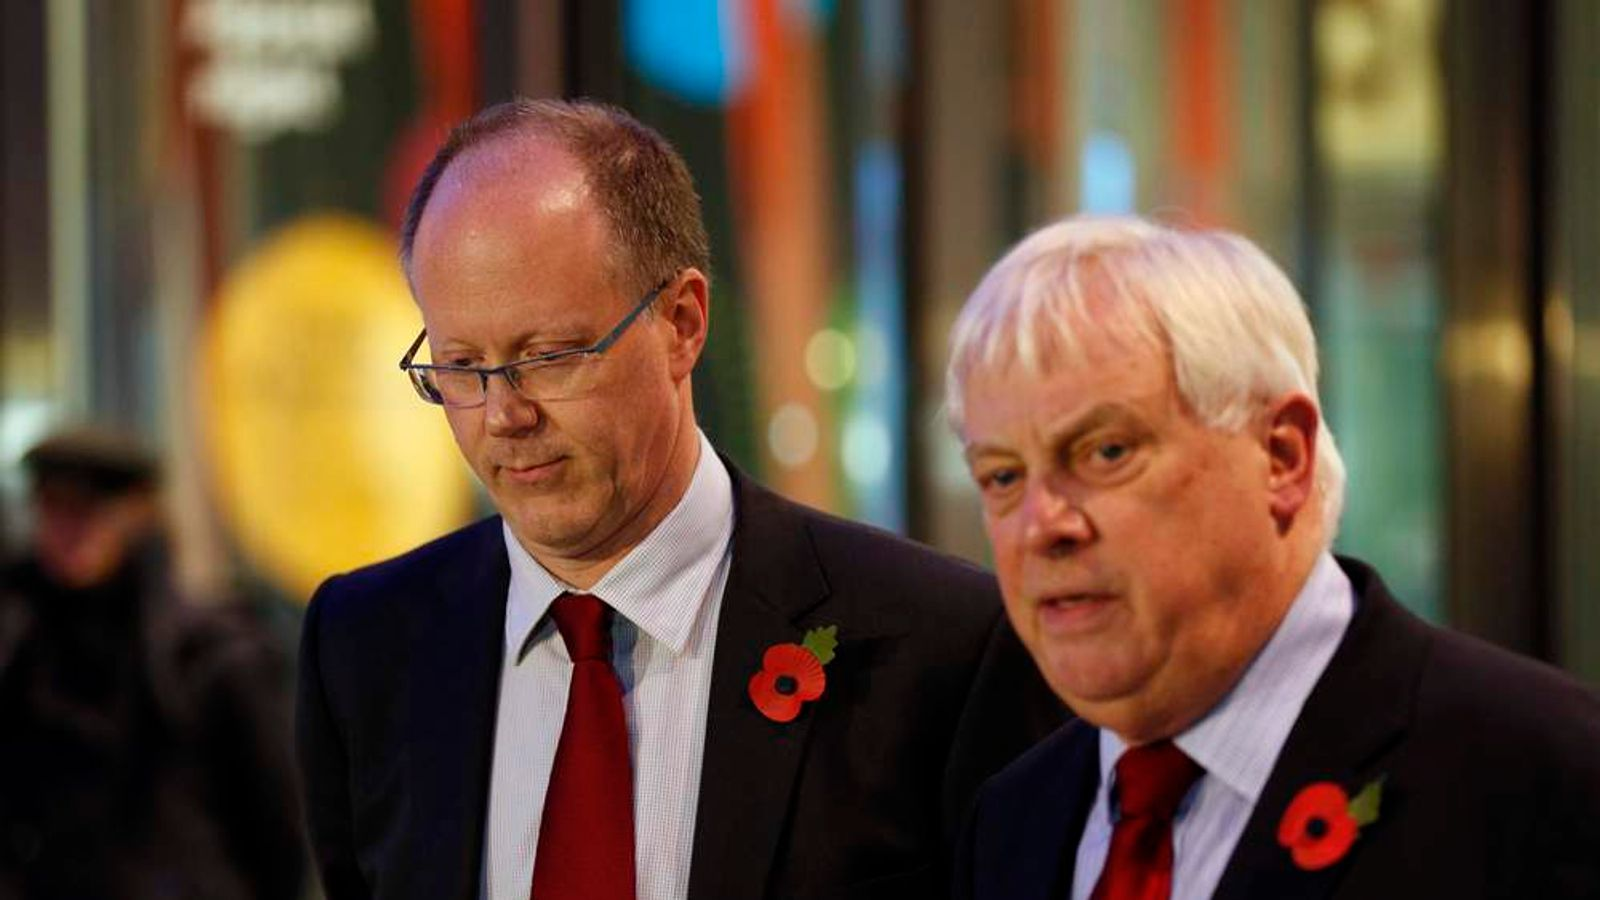 BBC director general George Entwistle and Chairman of the BBC Trust Lord Patten